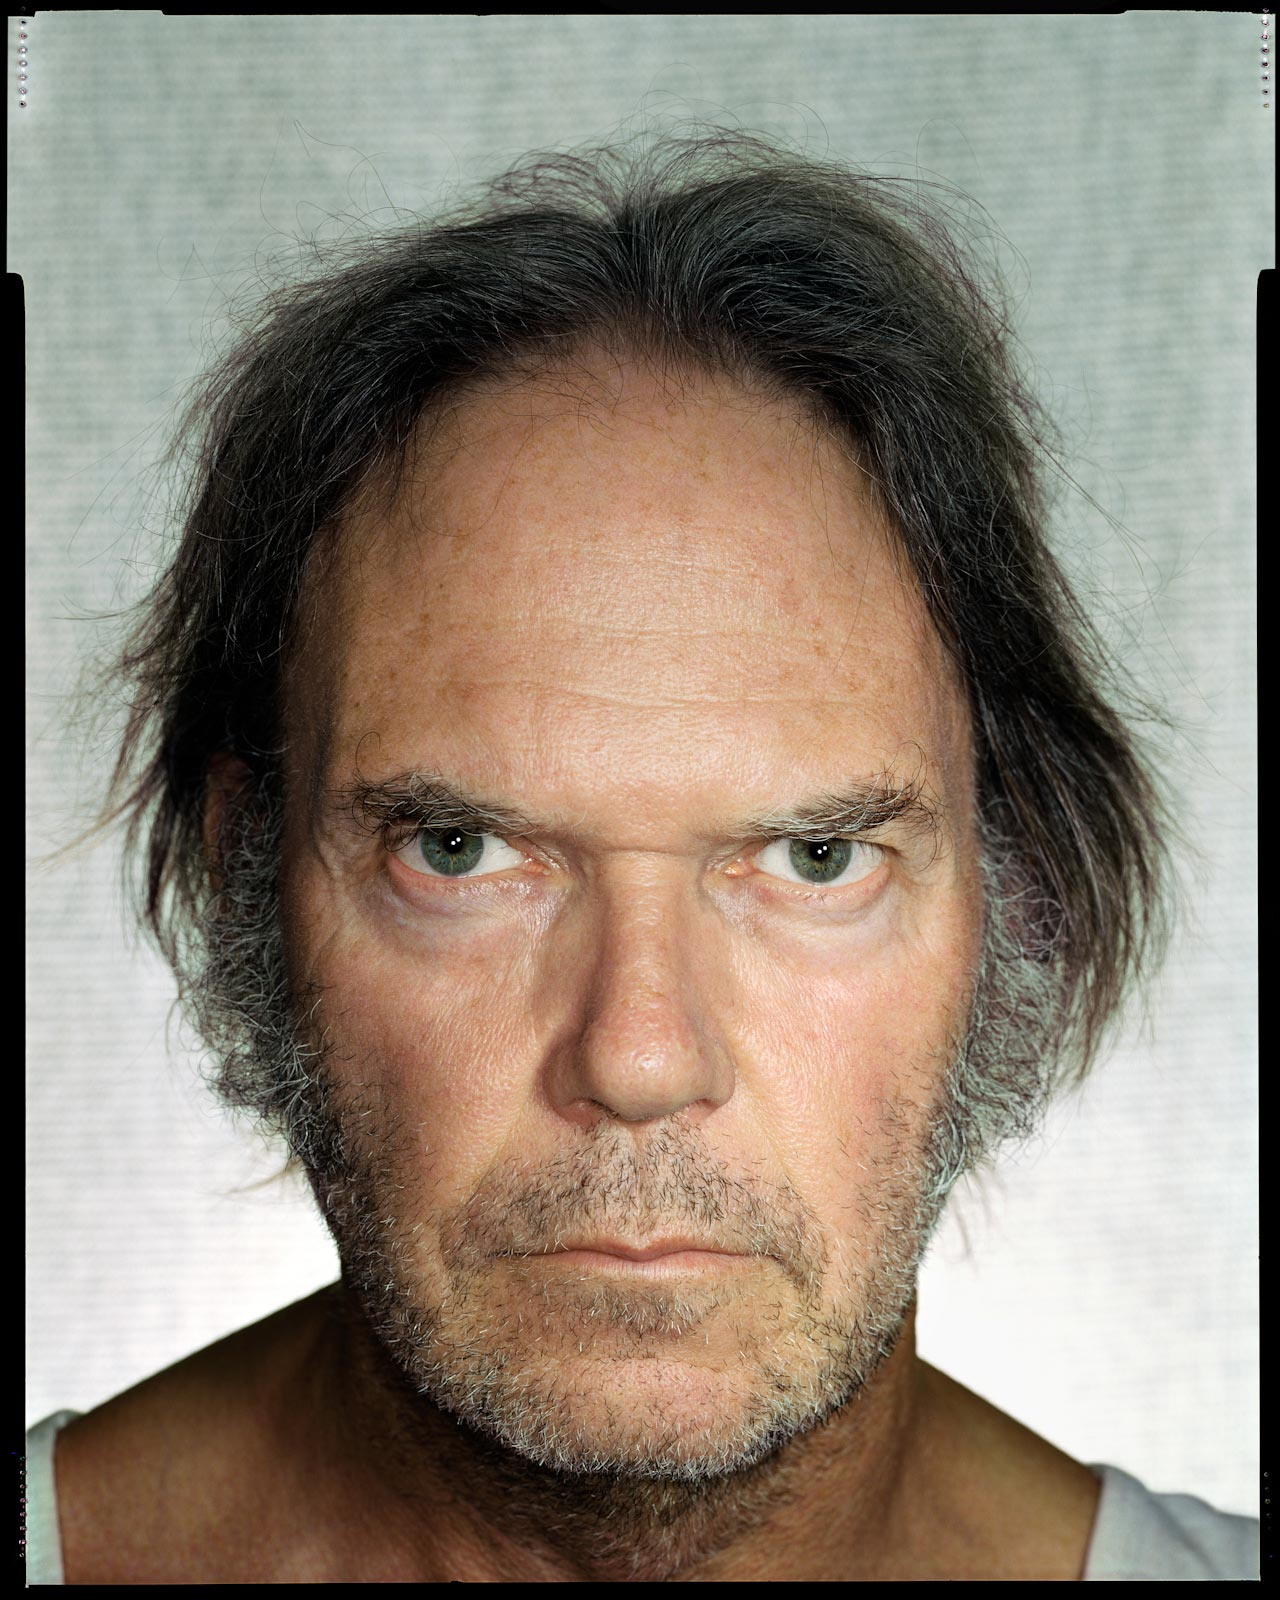 Neil Young - Waimea, HI - New York Times Magazine